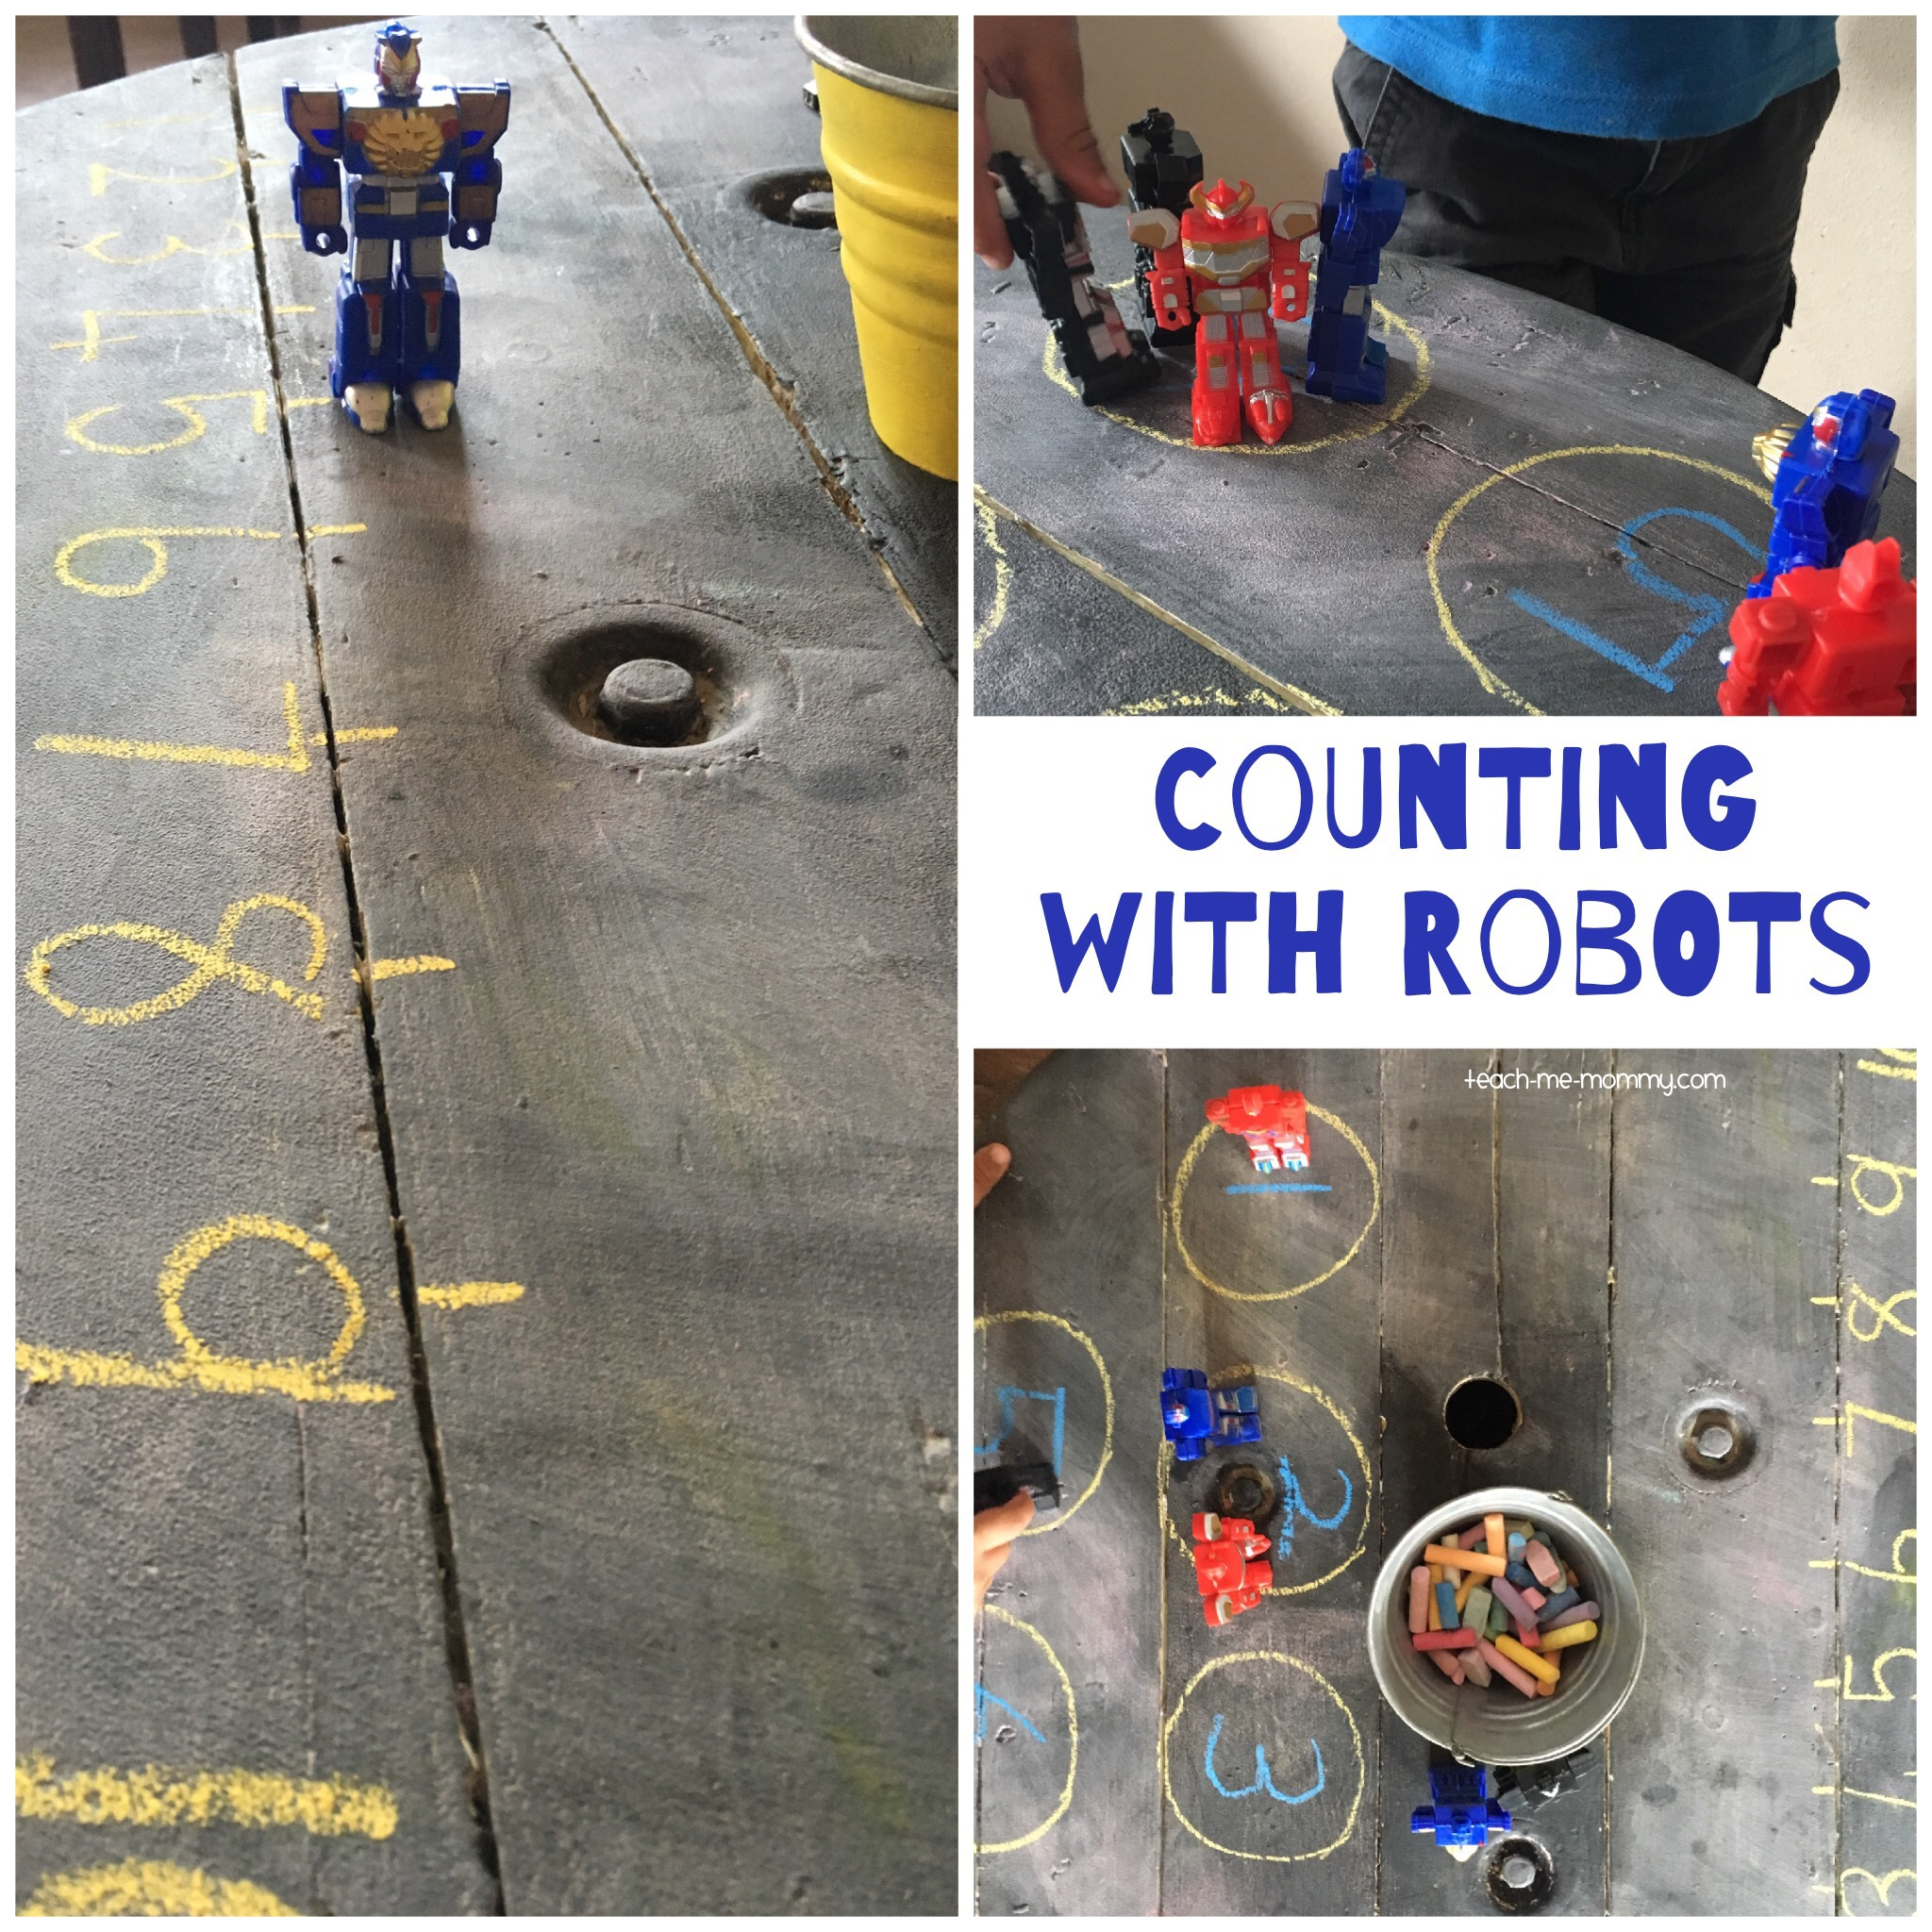 Counting with Robots